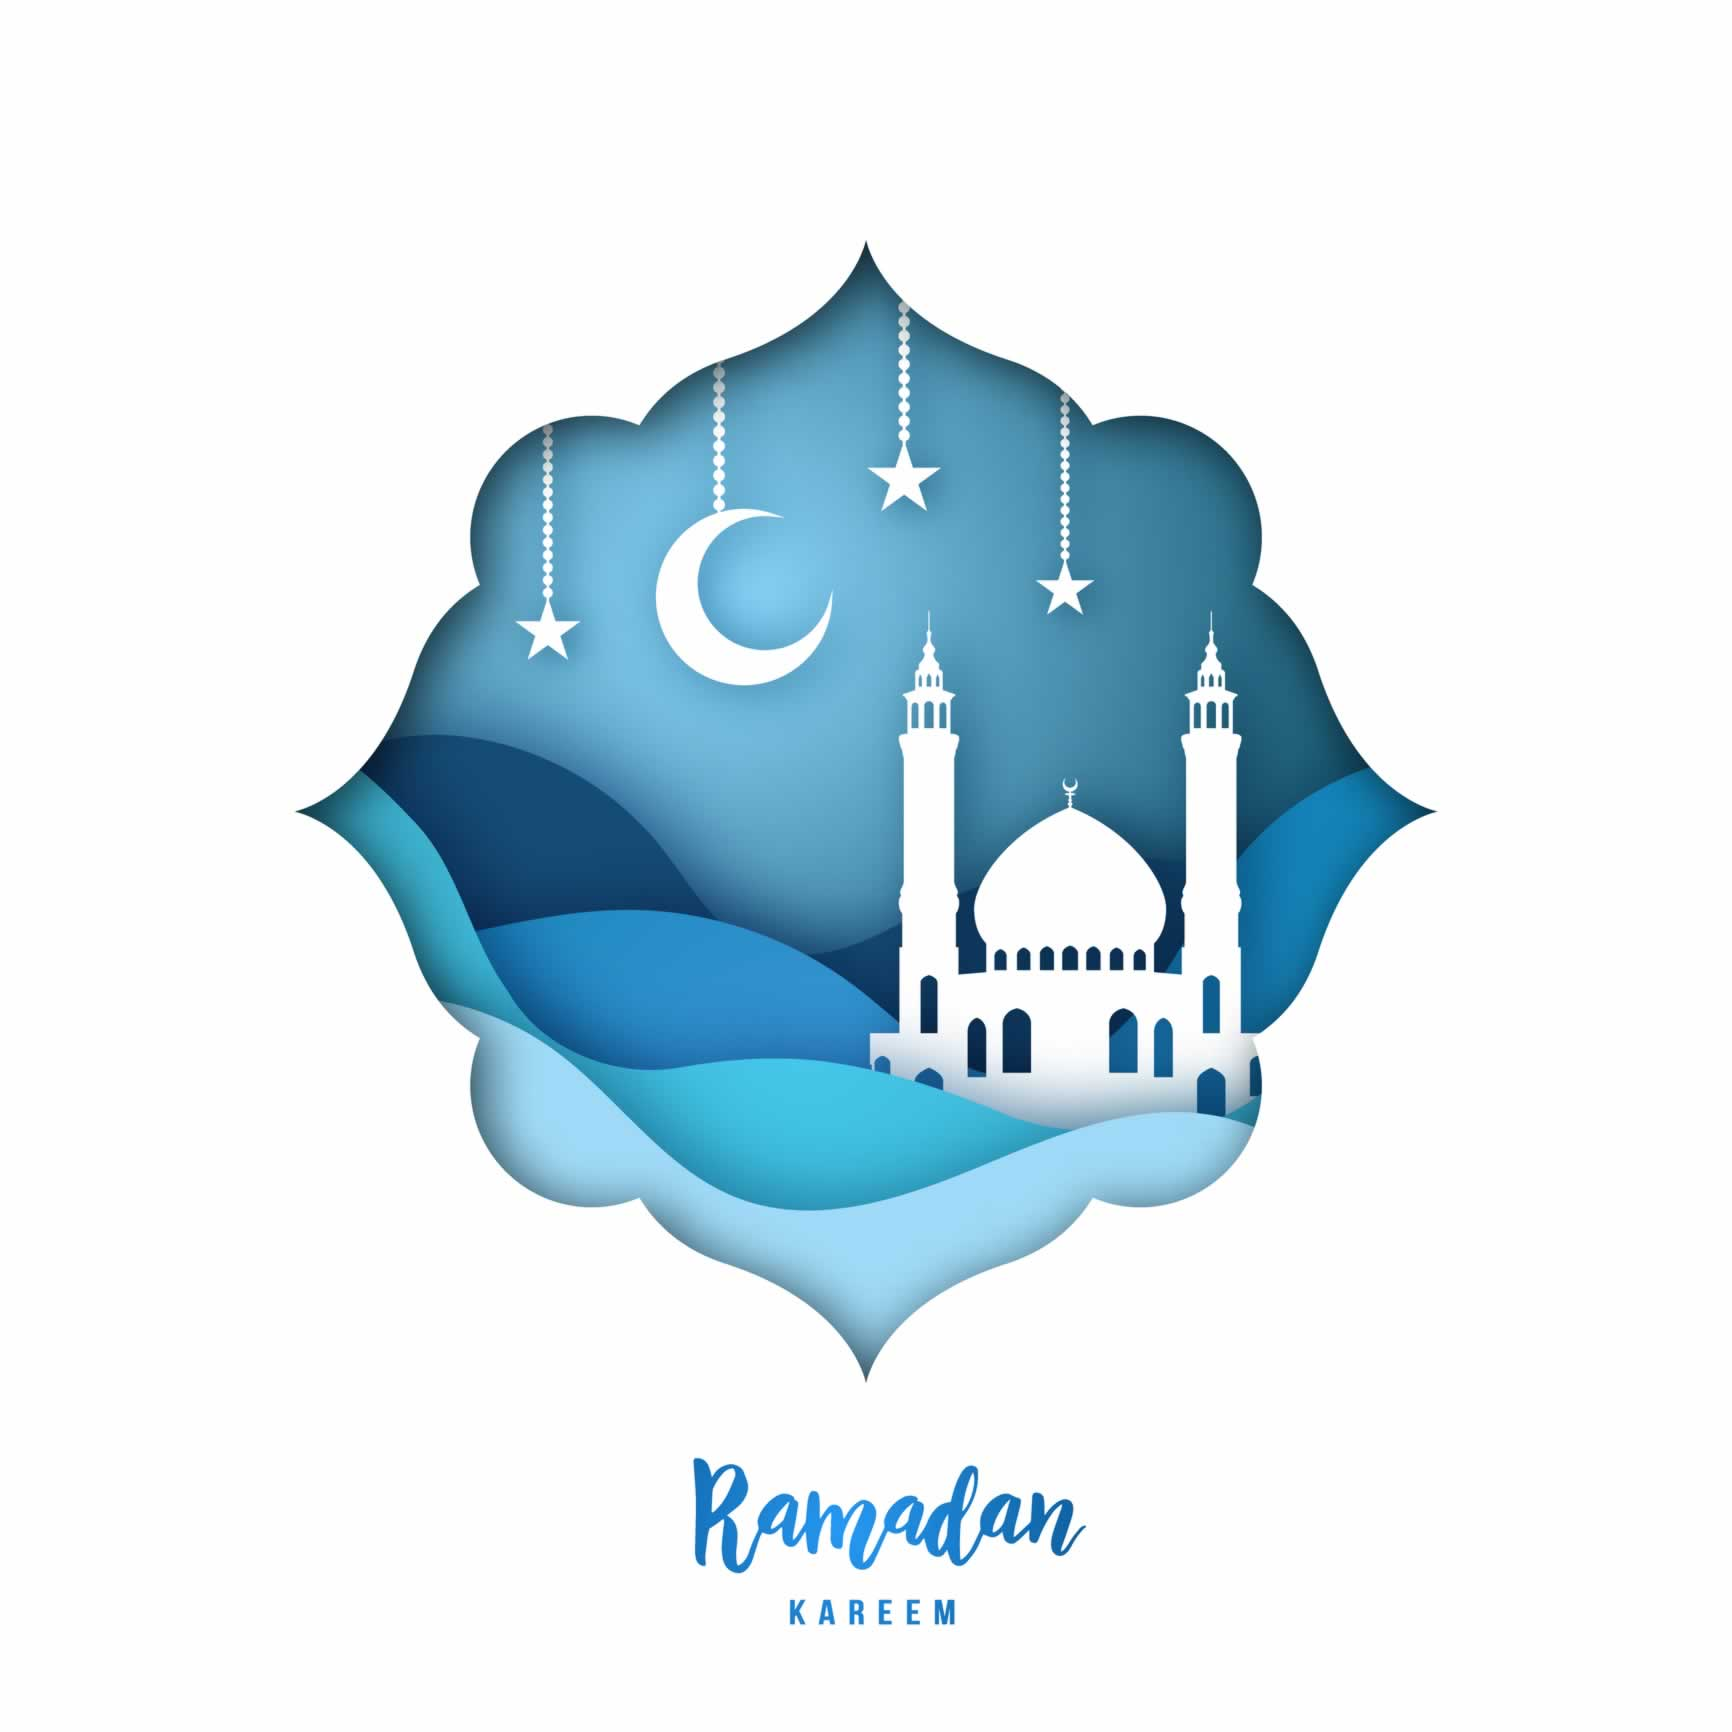 """Illustration of a mosque under a night sky with the text: """"Ramadan kareem"""""""